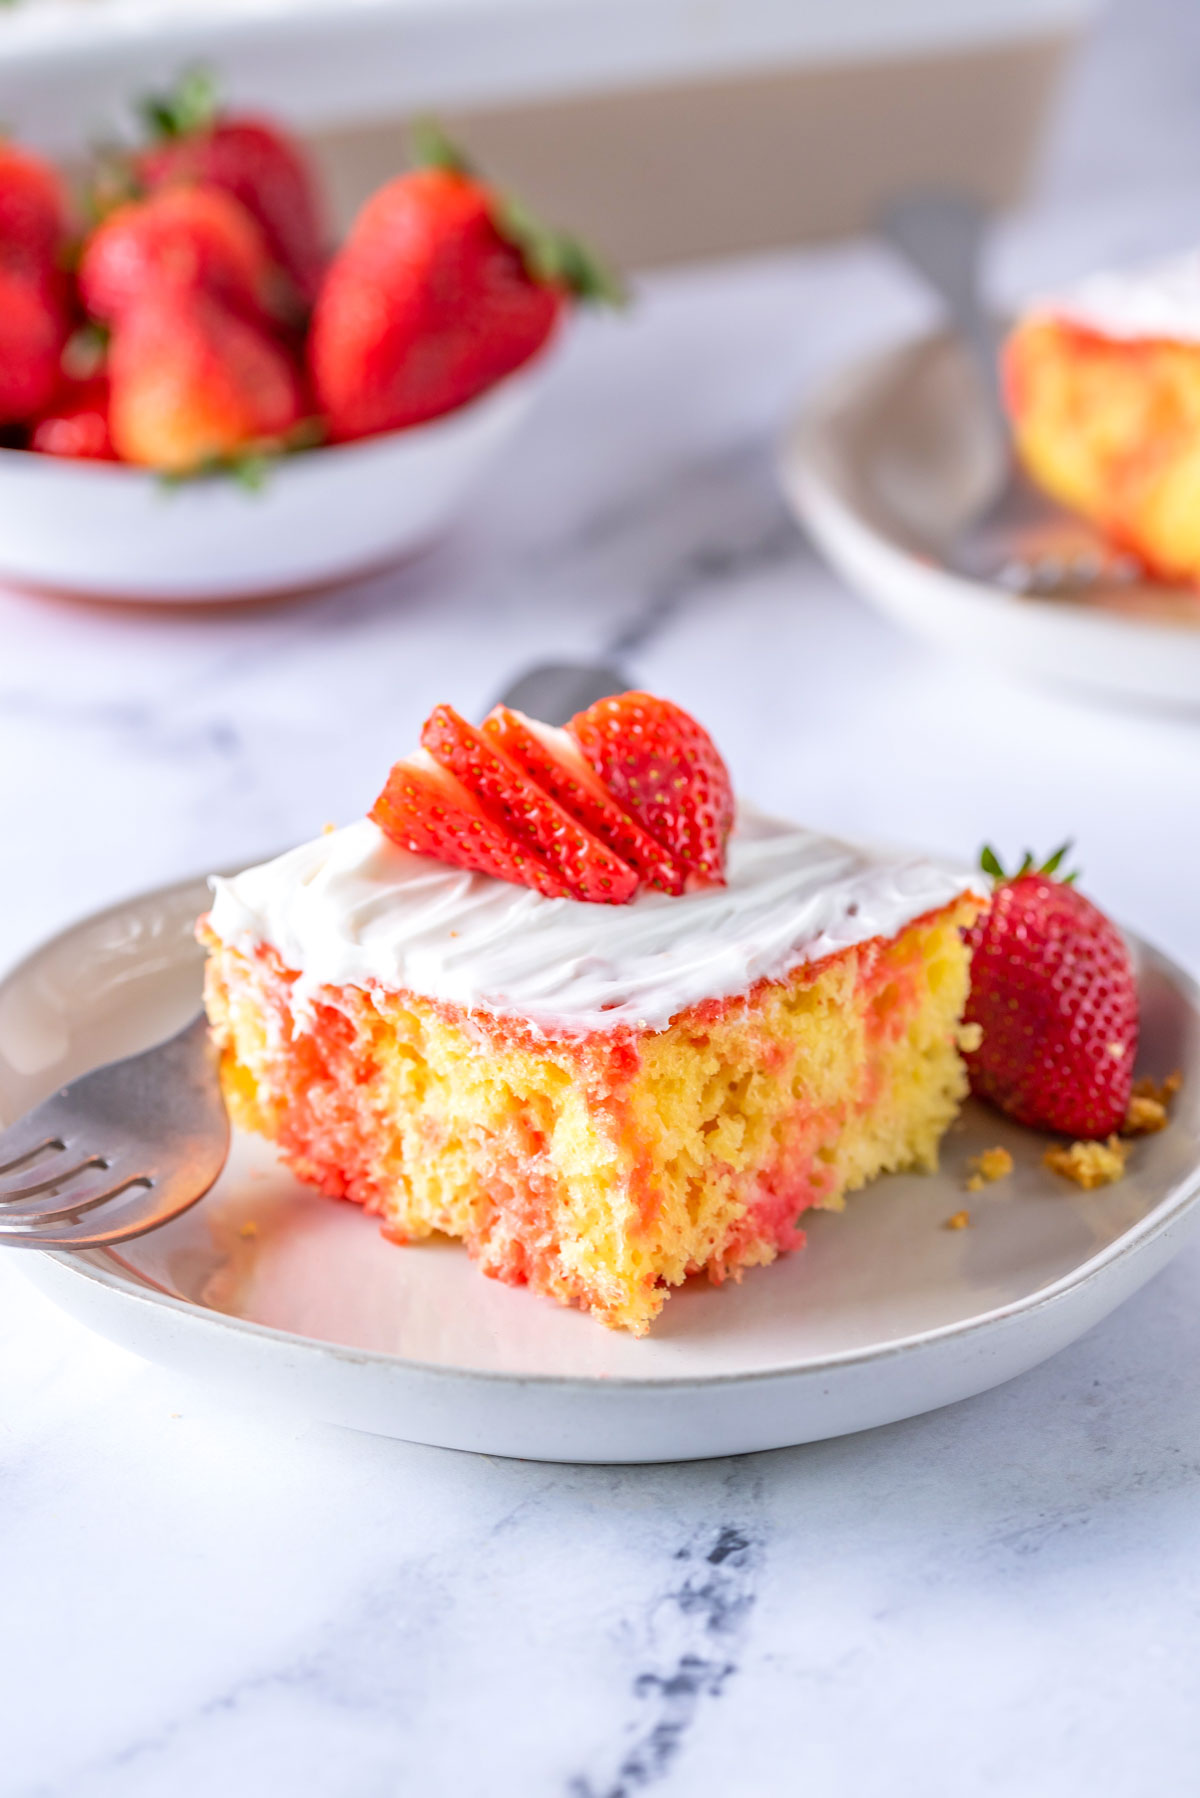 one slice of strawberry poke cake served on a white plate